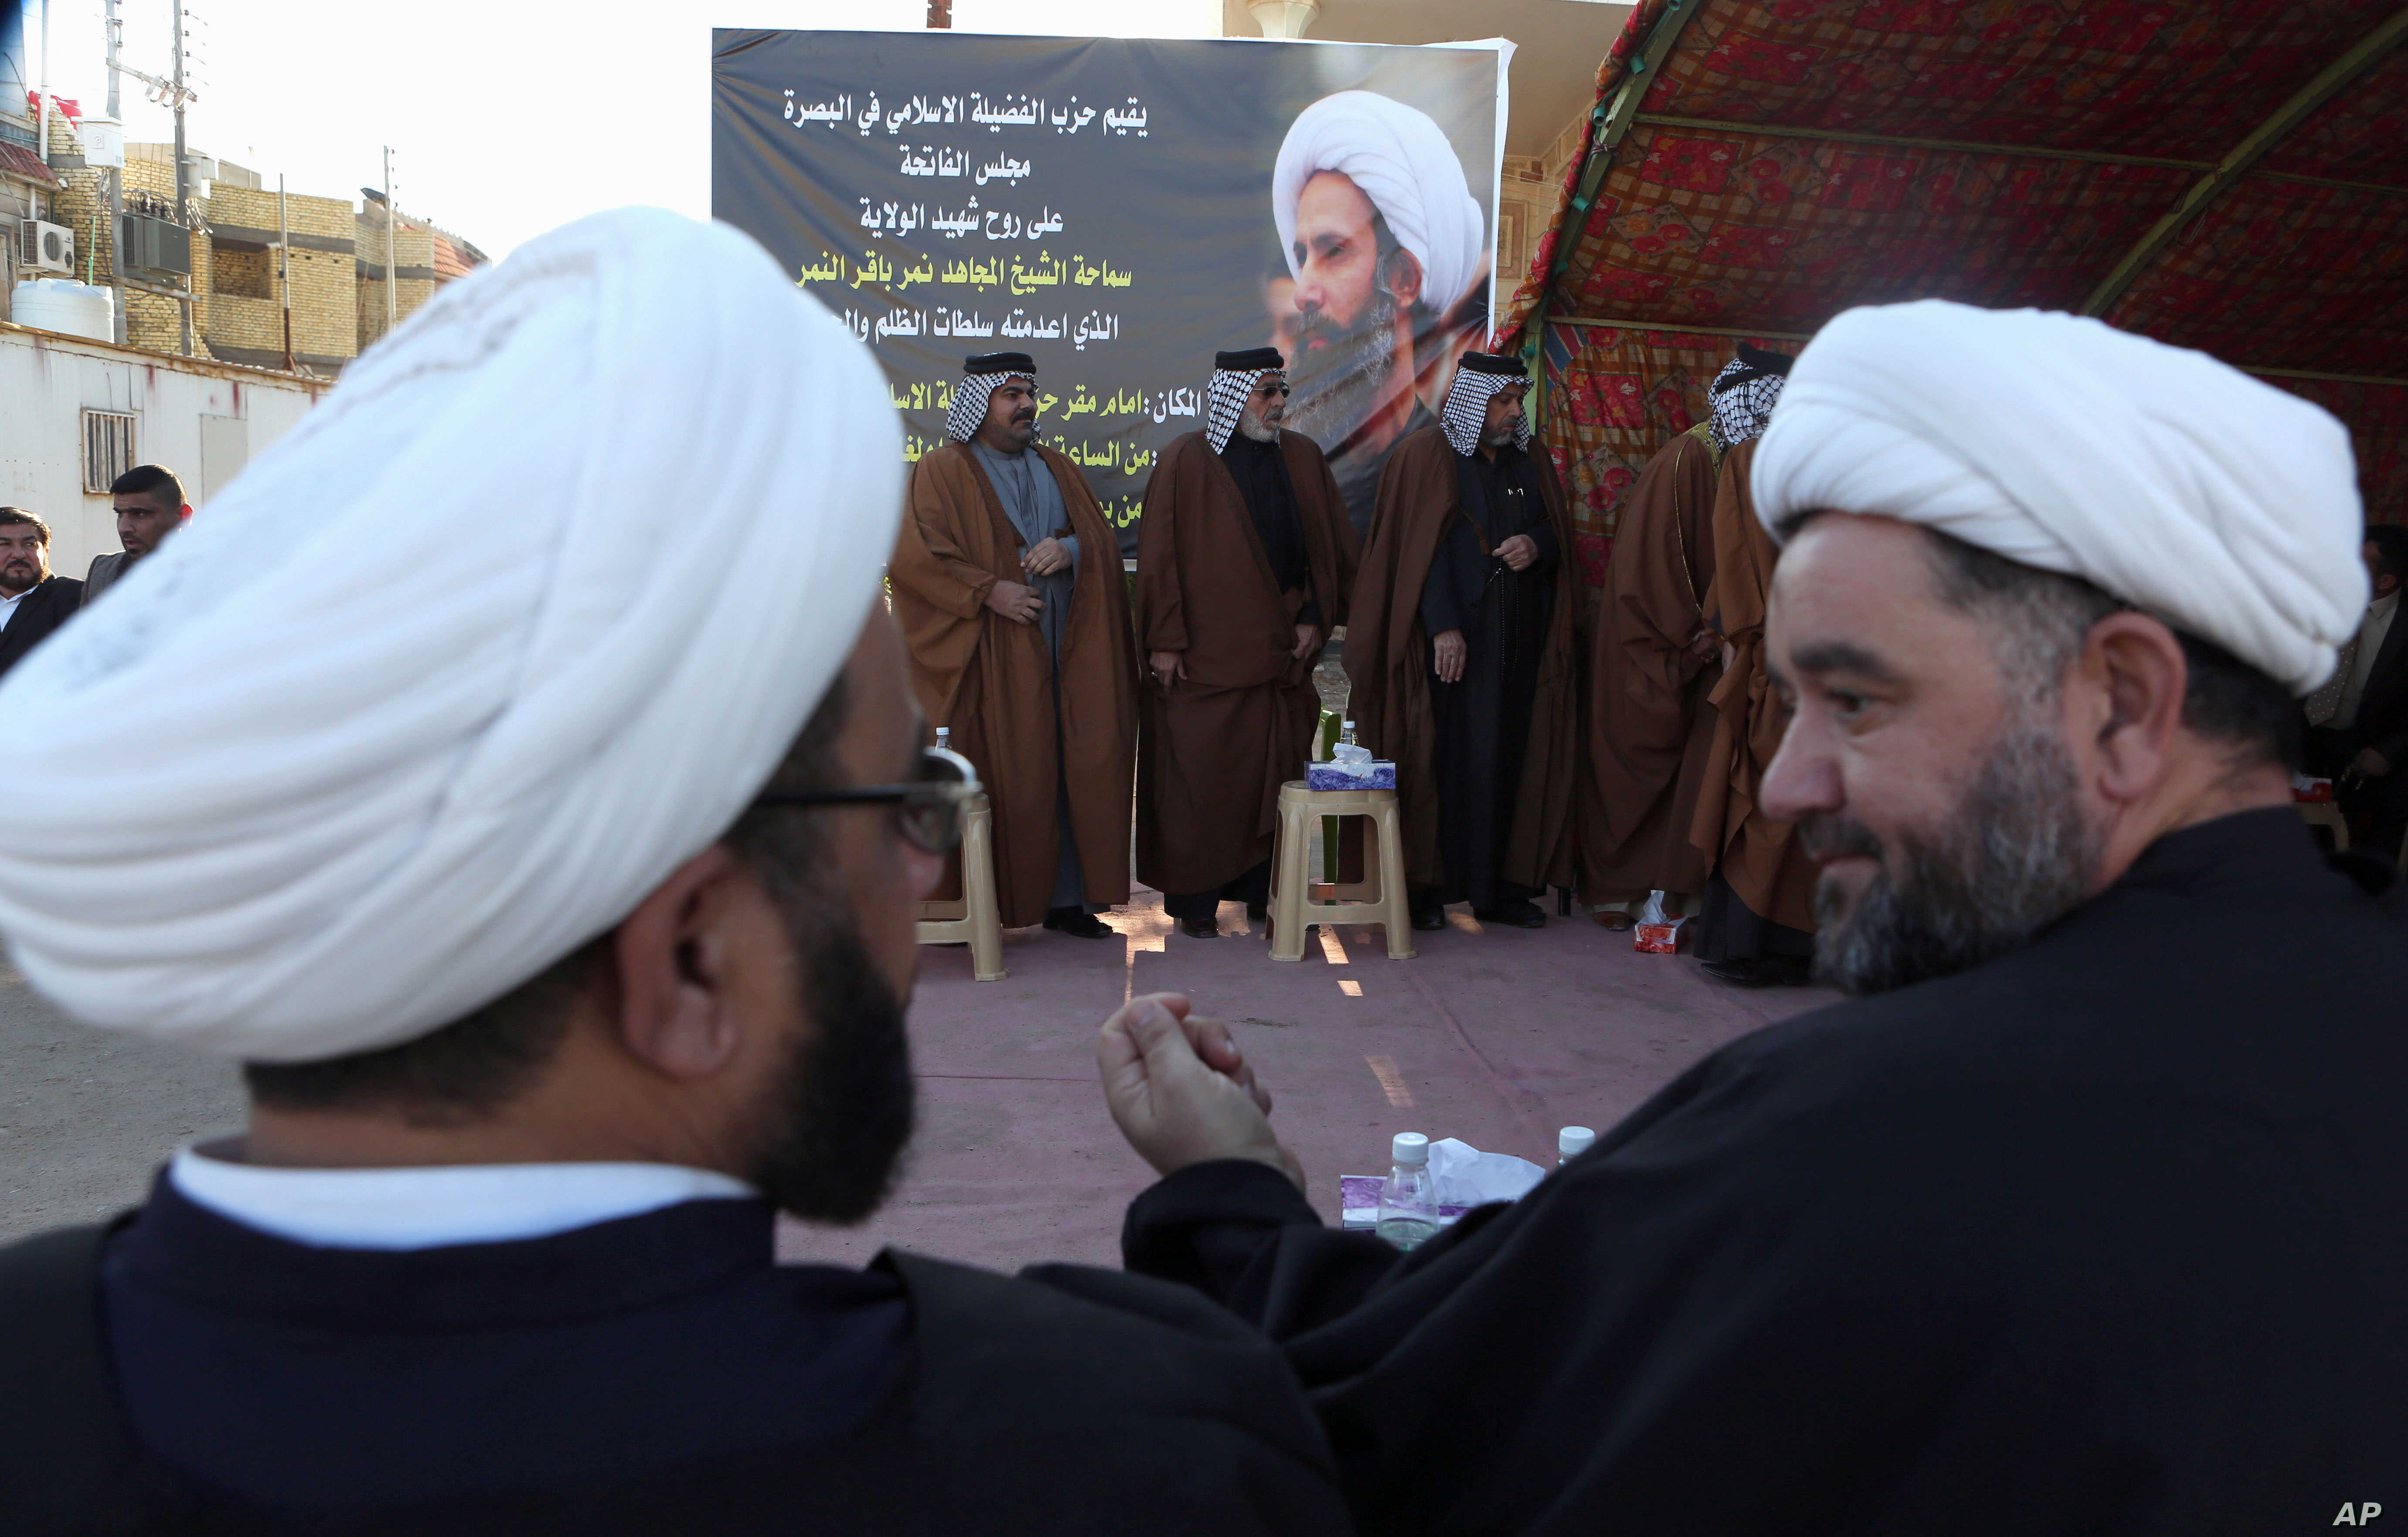 Iraqi Shiite clerics,foreground, attend a symbolic funeral for Sheik Nimr al-Nimr, seen in background photo, a prominent opposition Shiite cleric convicted of terrorism charges and executed by Saudi Arabia, in Basra, Iraq, Jan. 3, 2016.